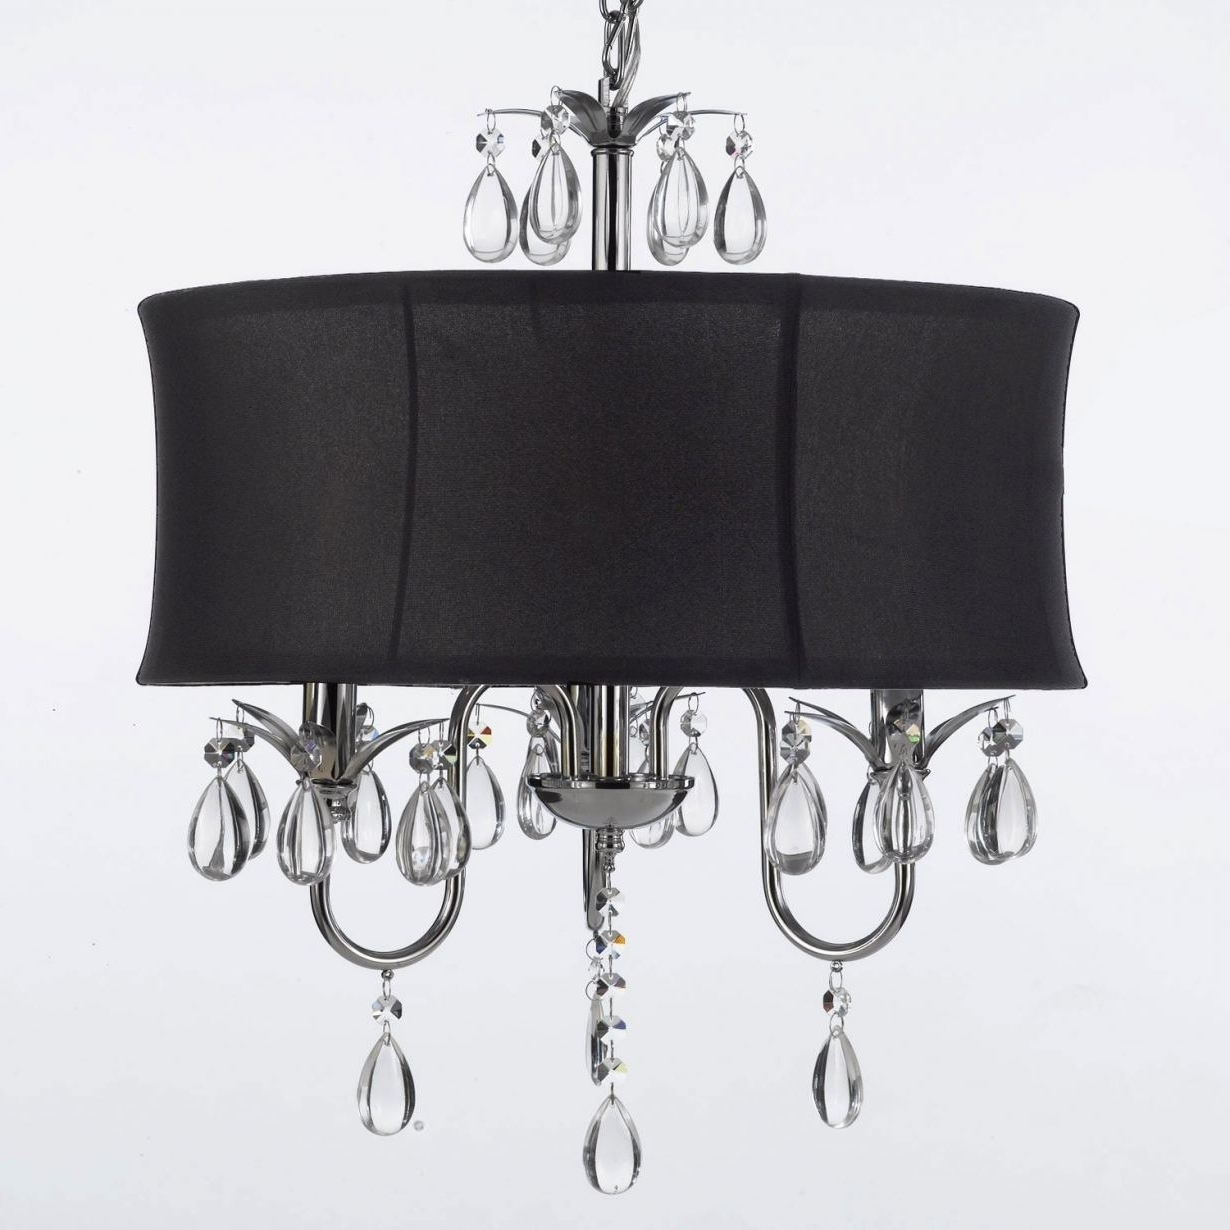 Contemporary Black Chandelier Throughout 2017 Black Crystal Chandelier Lighting #3 Modern Contemporary Black Drum (View 4 of 15)